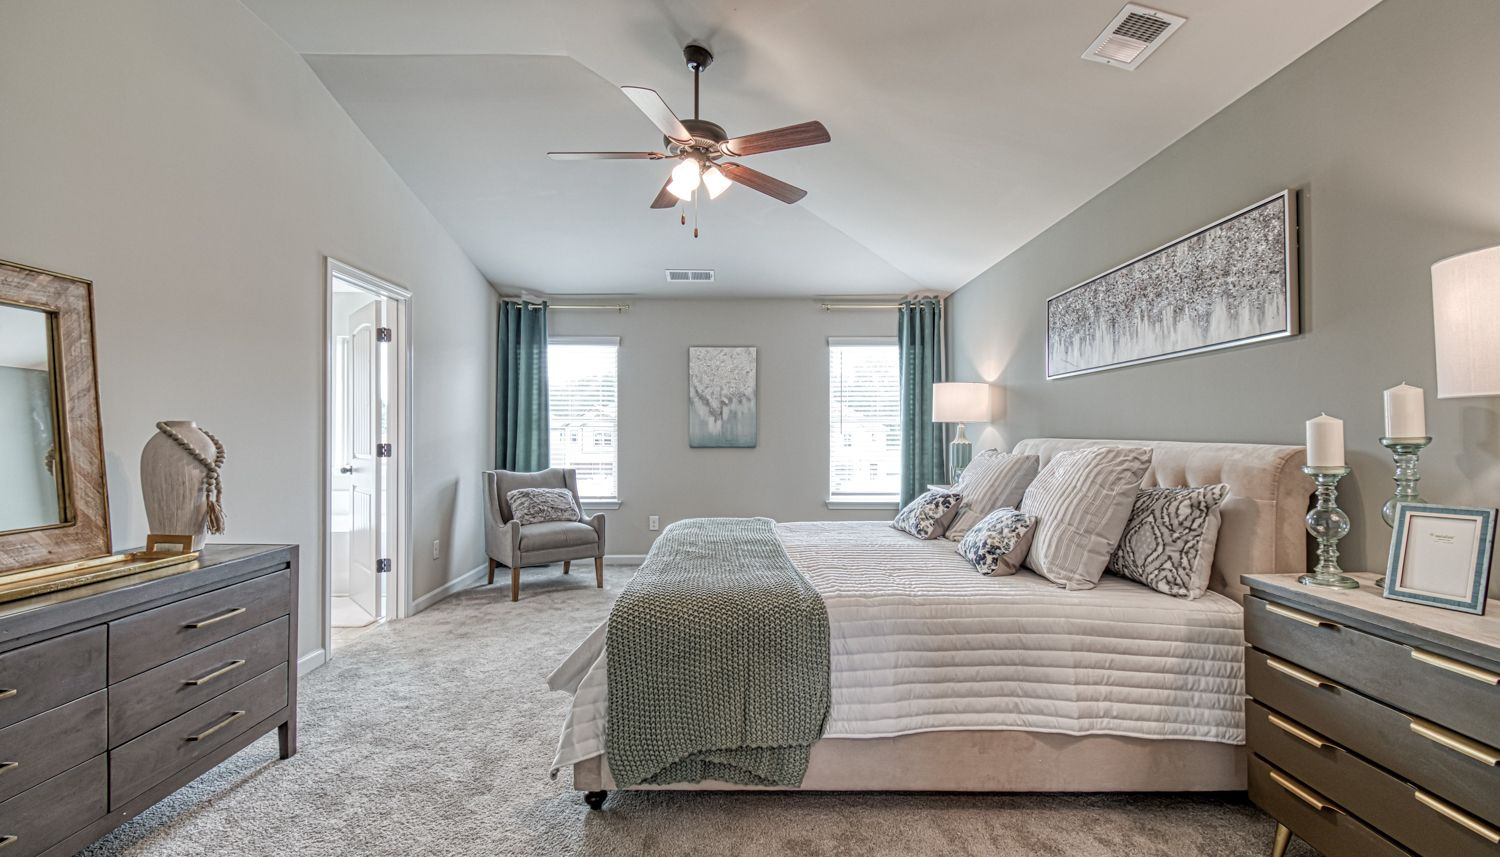 Bedroom featured in The Layla II By Dan Ryan Builders in Atlanta, GA